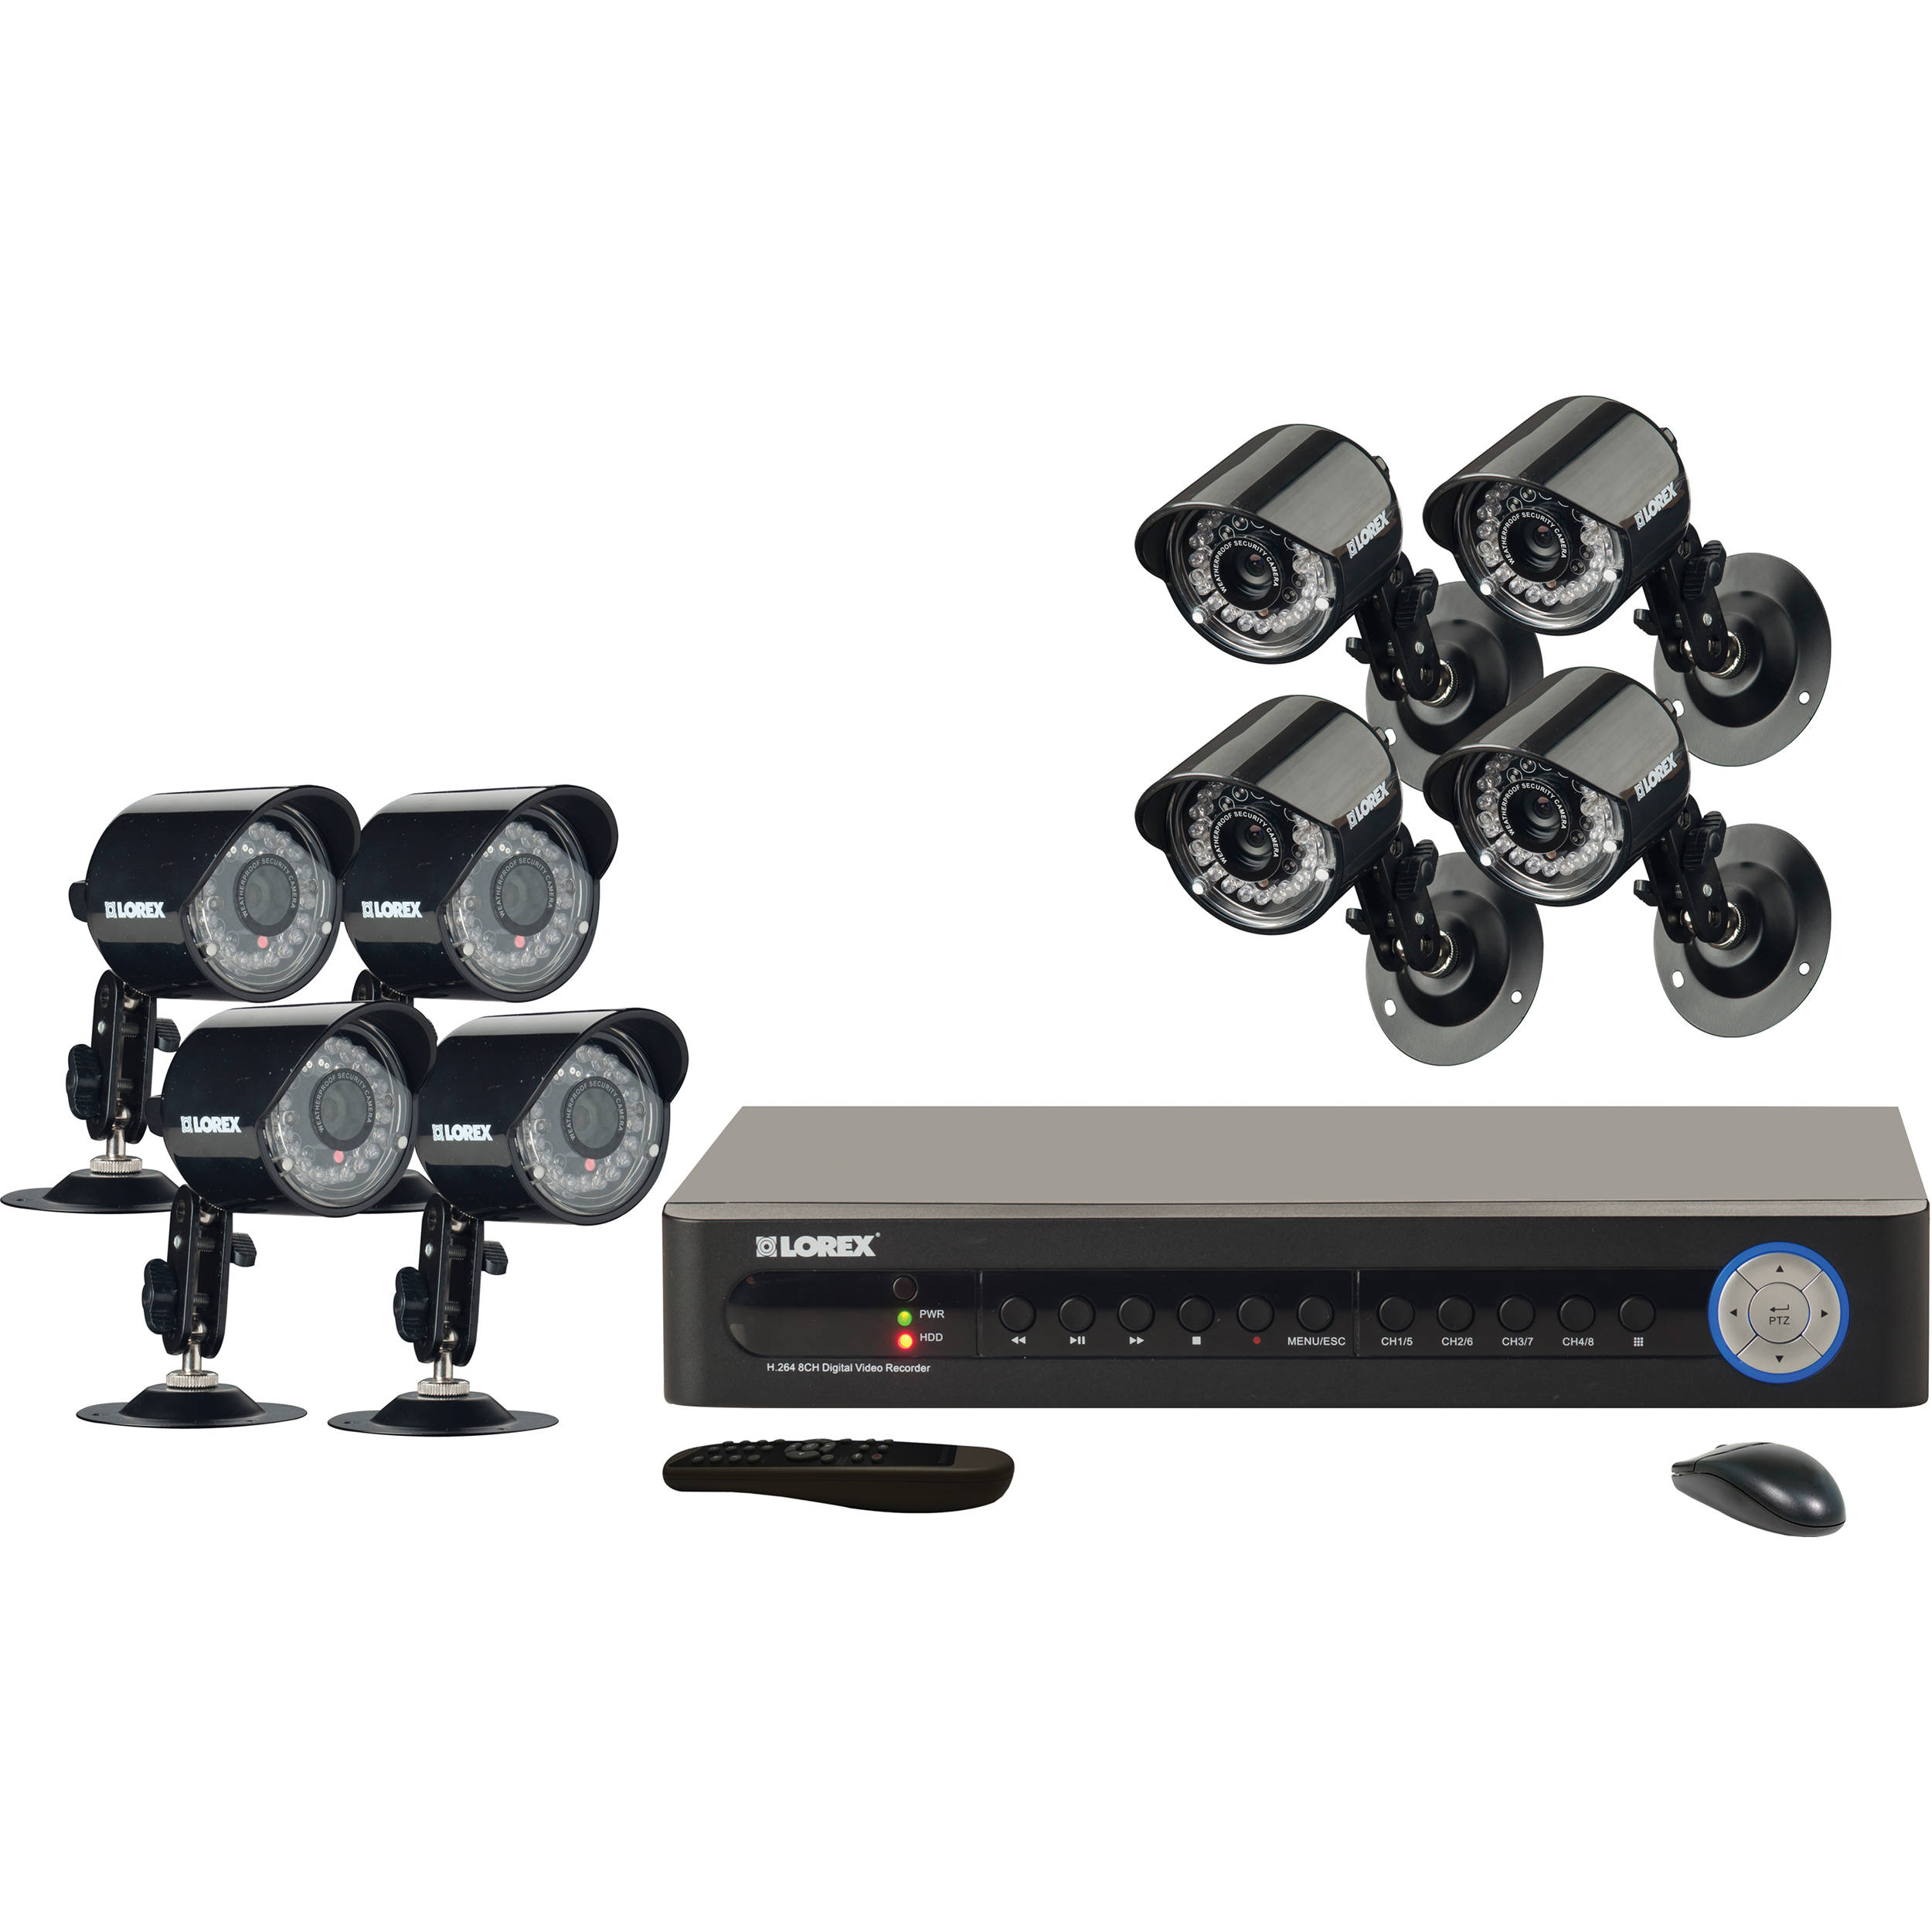 relbornbingzarword.gq offers 28 lorex camera system products. About 75% of these are cctv camera, 17% are cctv system. A wide variety of lorex camera system options are available to you, such as ip camera, digital camera, and analog camera.